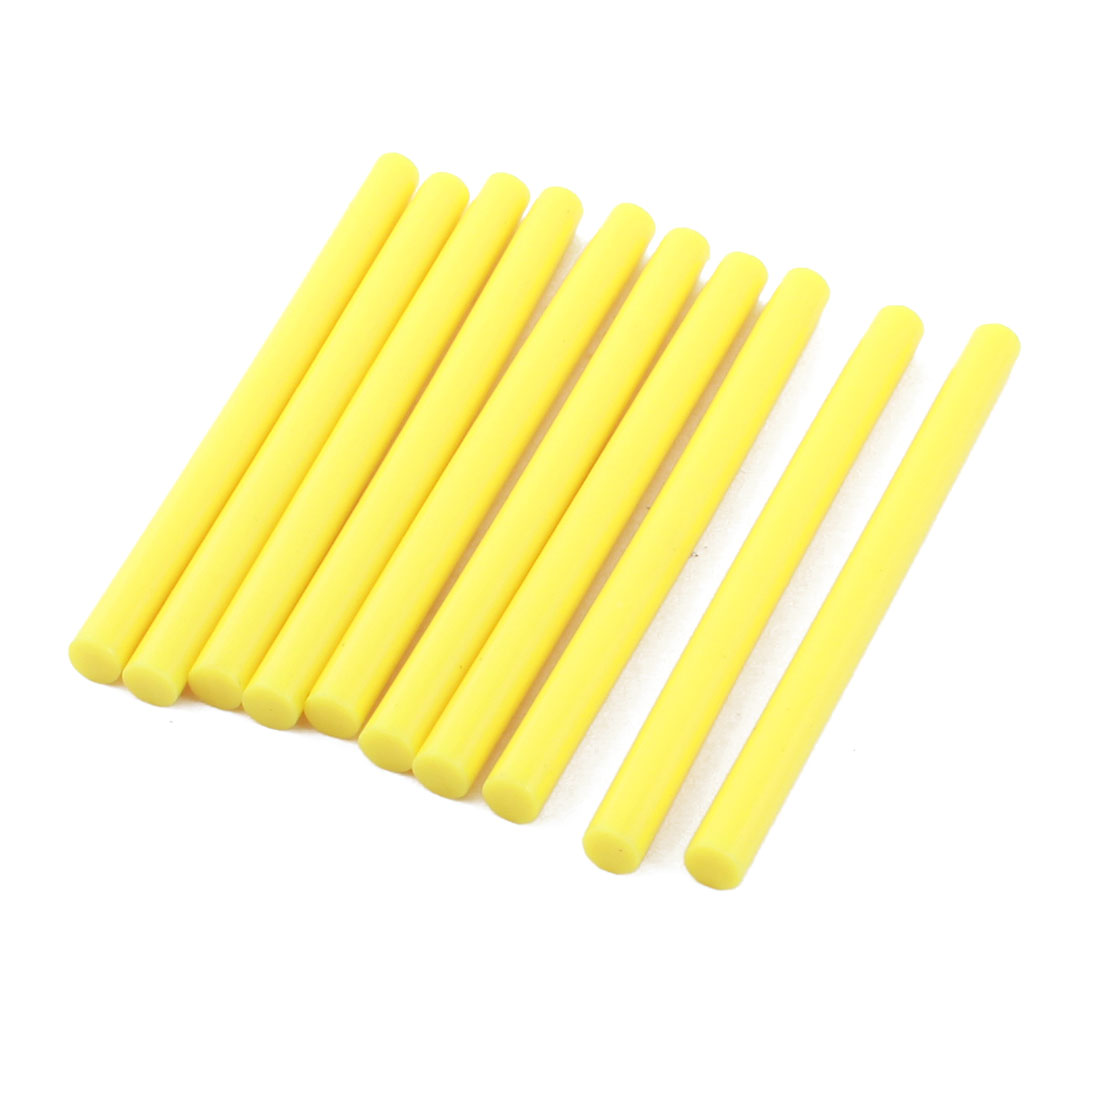 10 Pcs Yellow Hot Melt Glue Gun Adhesive Sticks 7mm x 100mm for Crafting Models